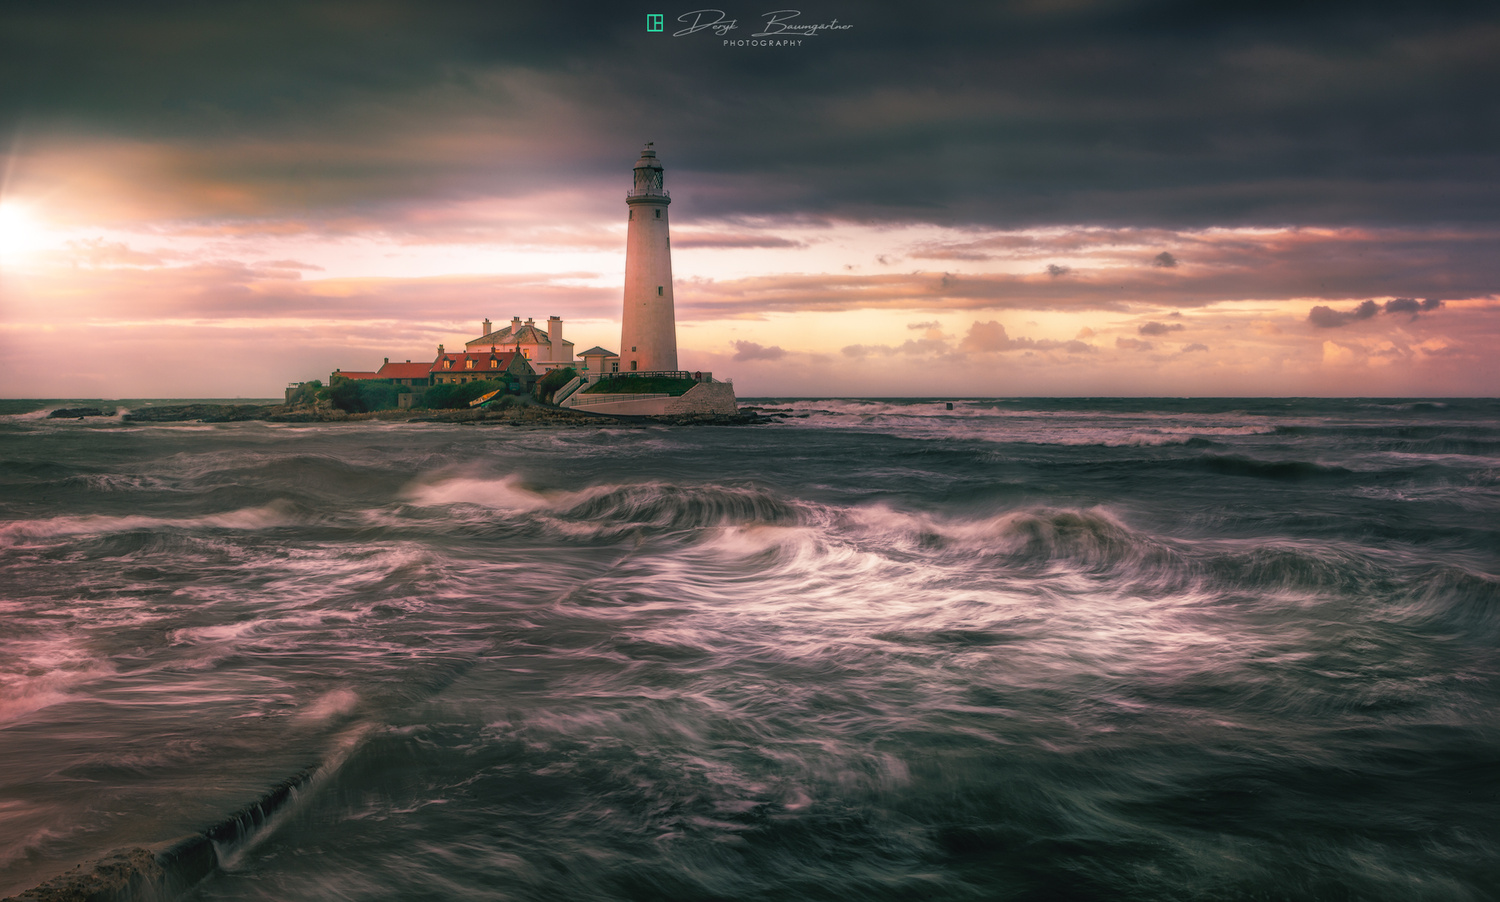 St. Mary's Lighthouse by Deryk Baumgärtner